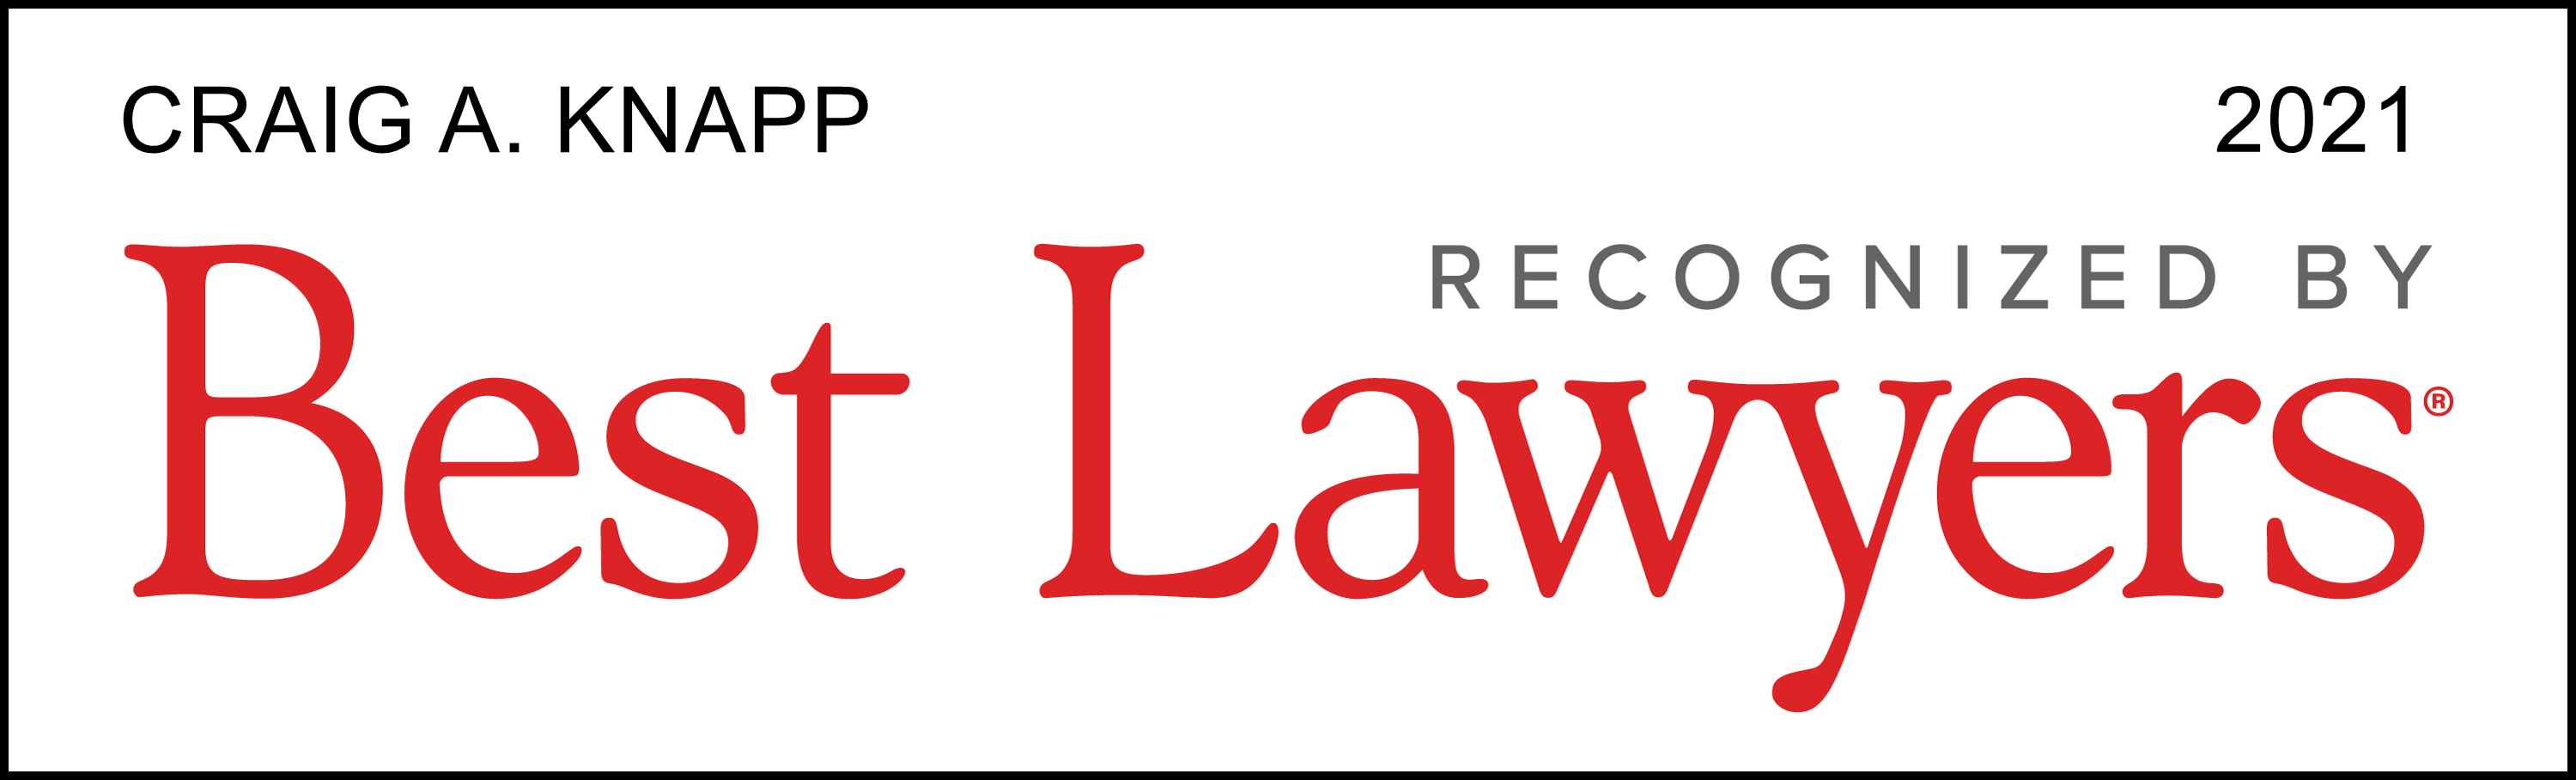 Recognized by Best Lawyers 2021